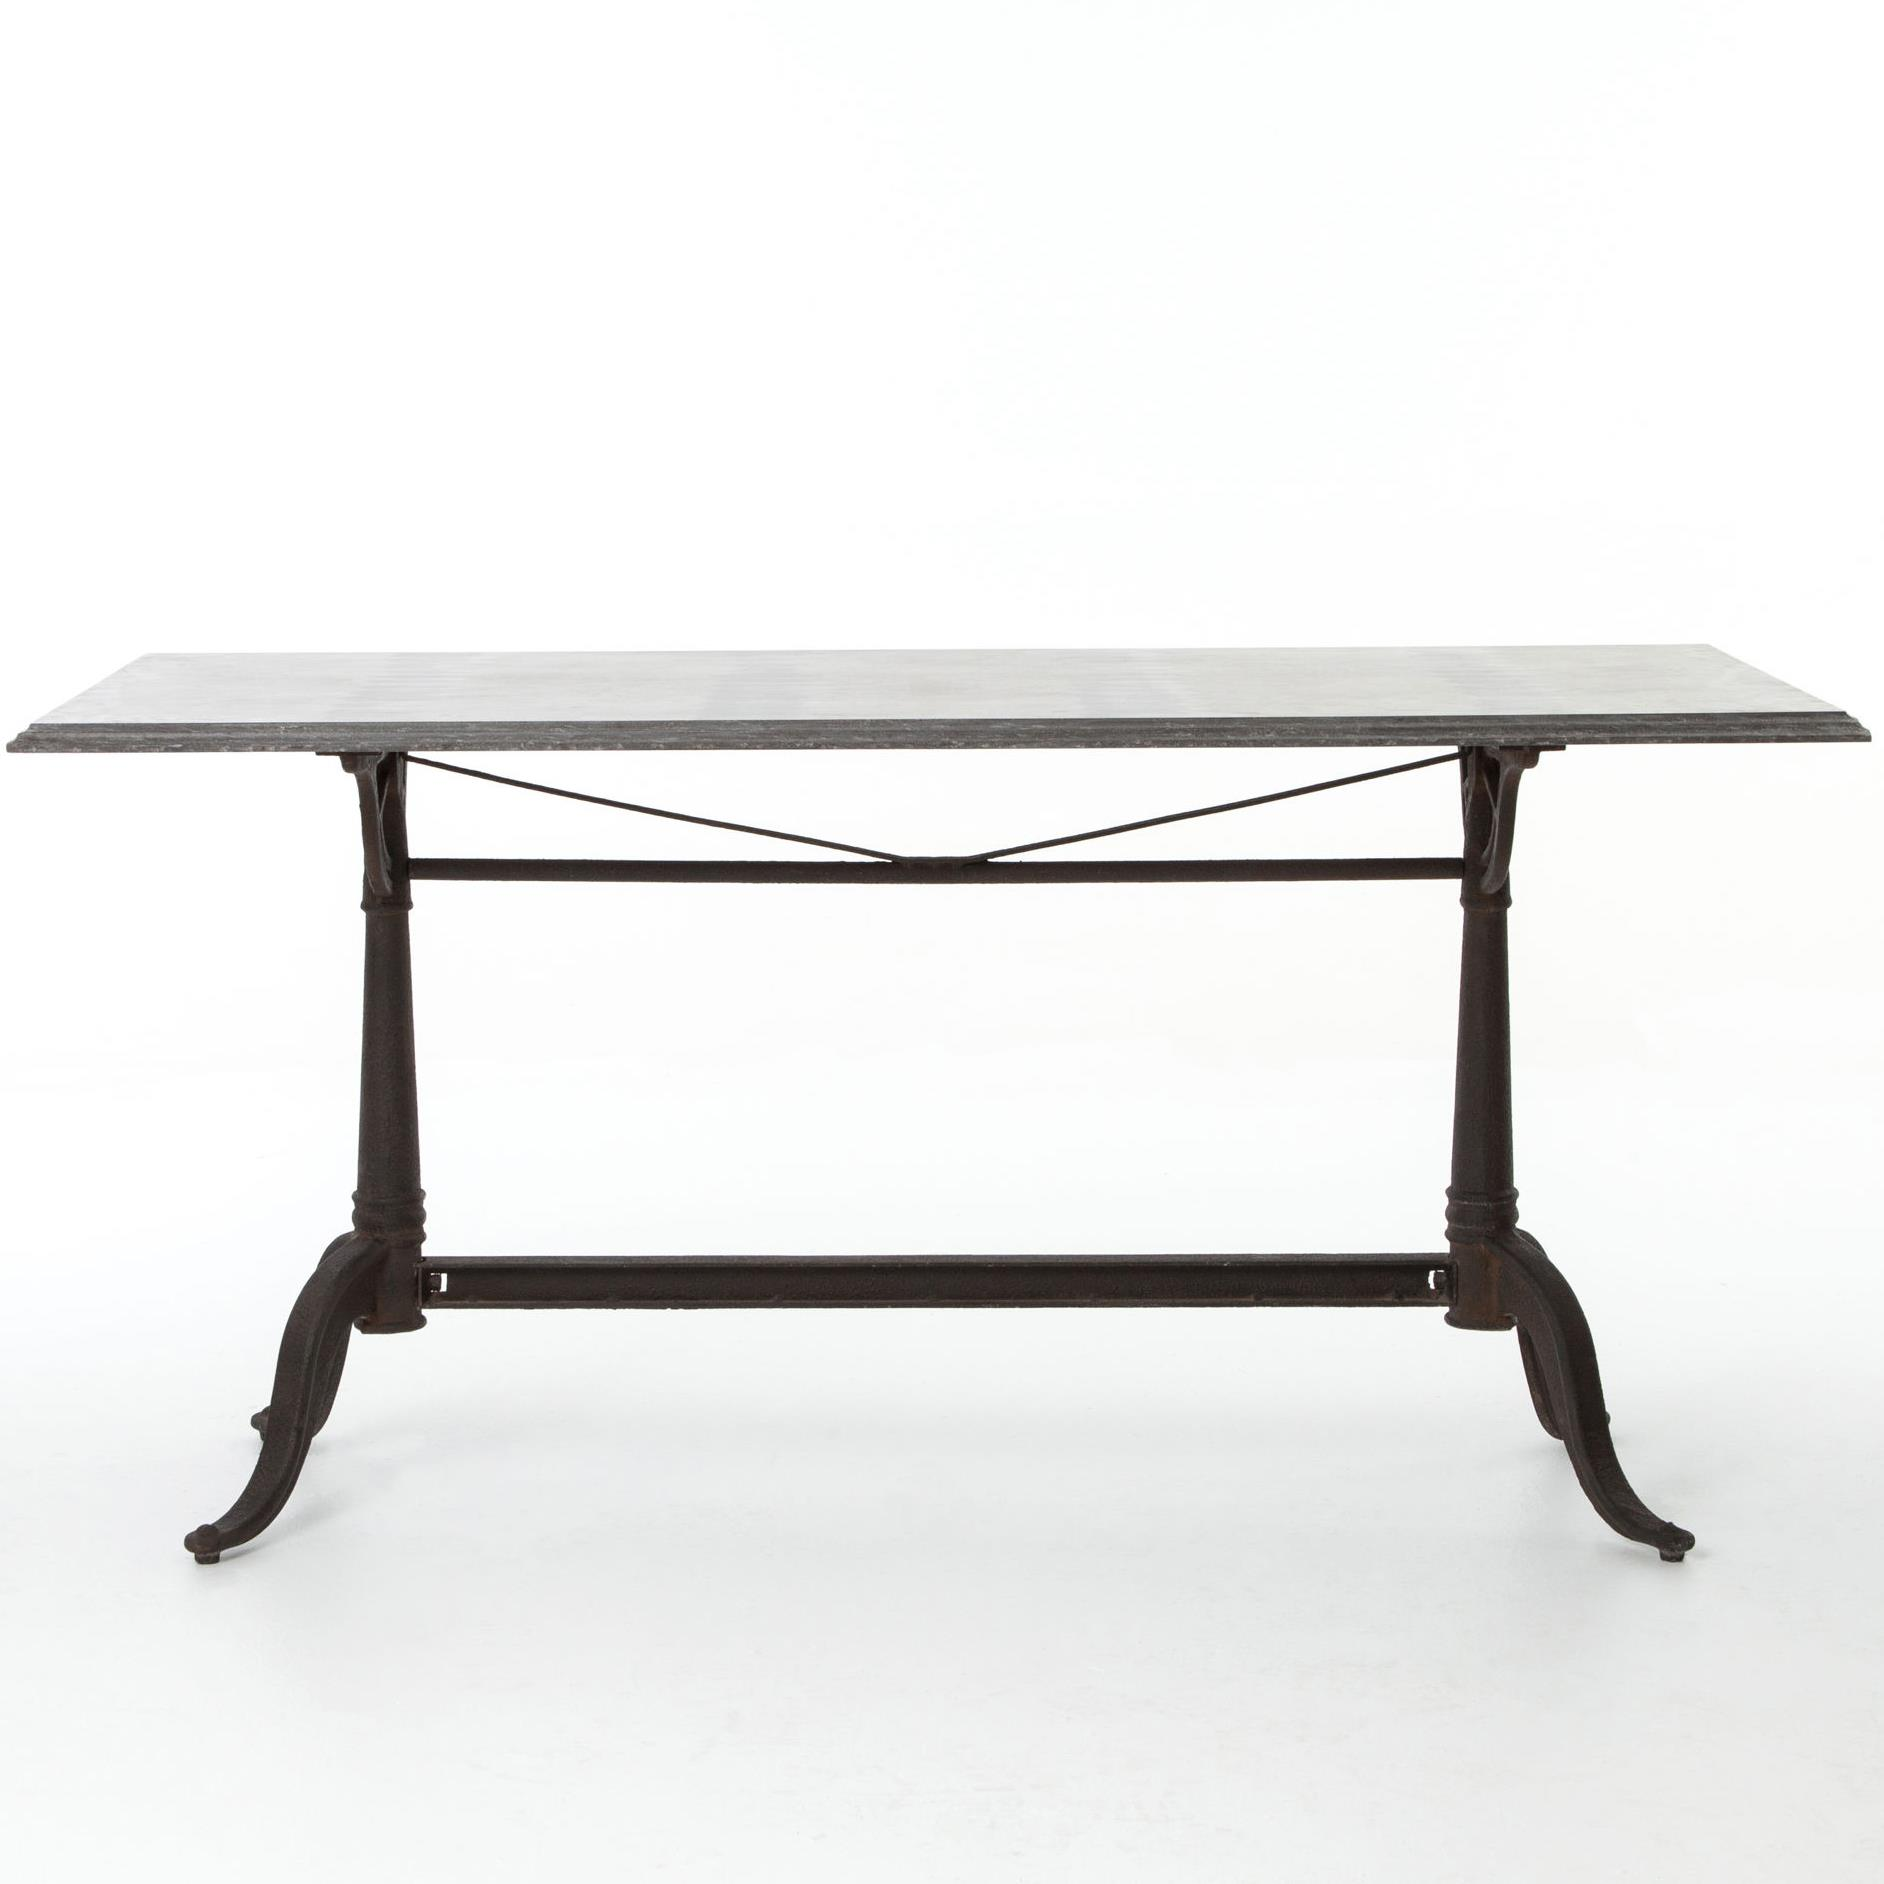 Parisian dining table with bluestone top by four hands for Dining table tj hughes